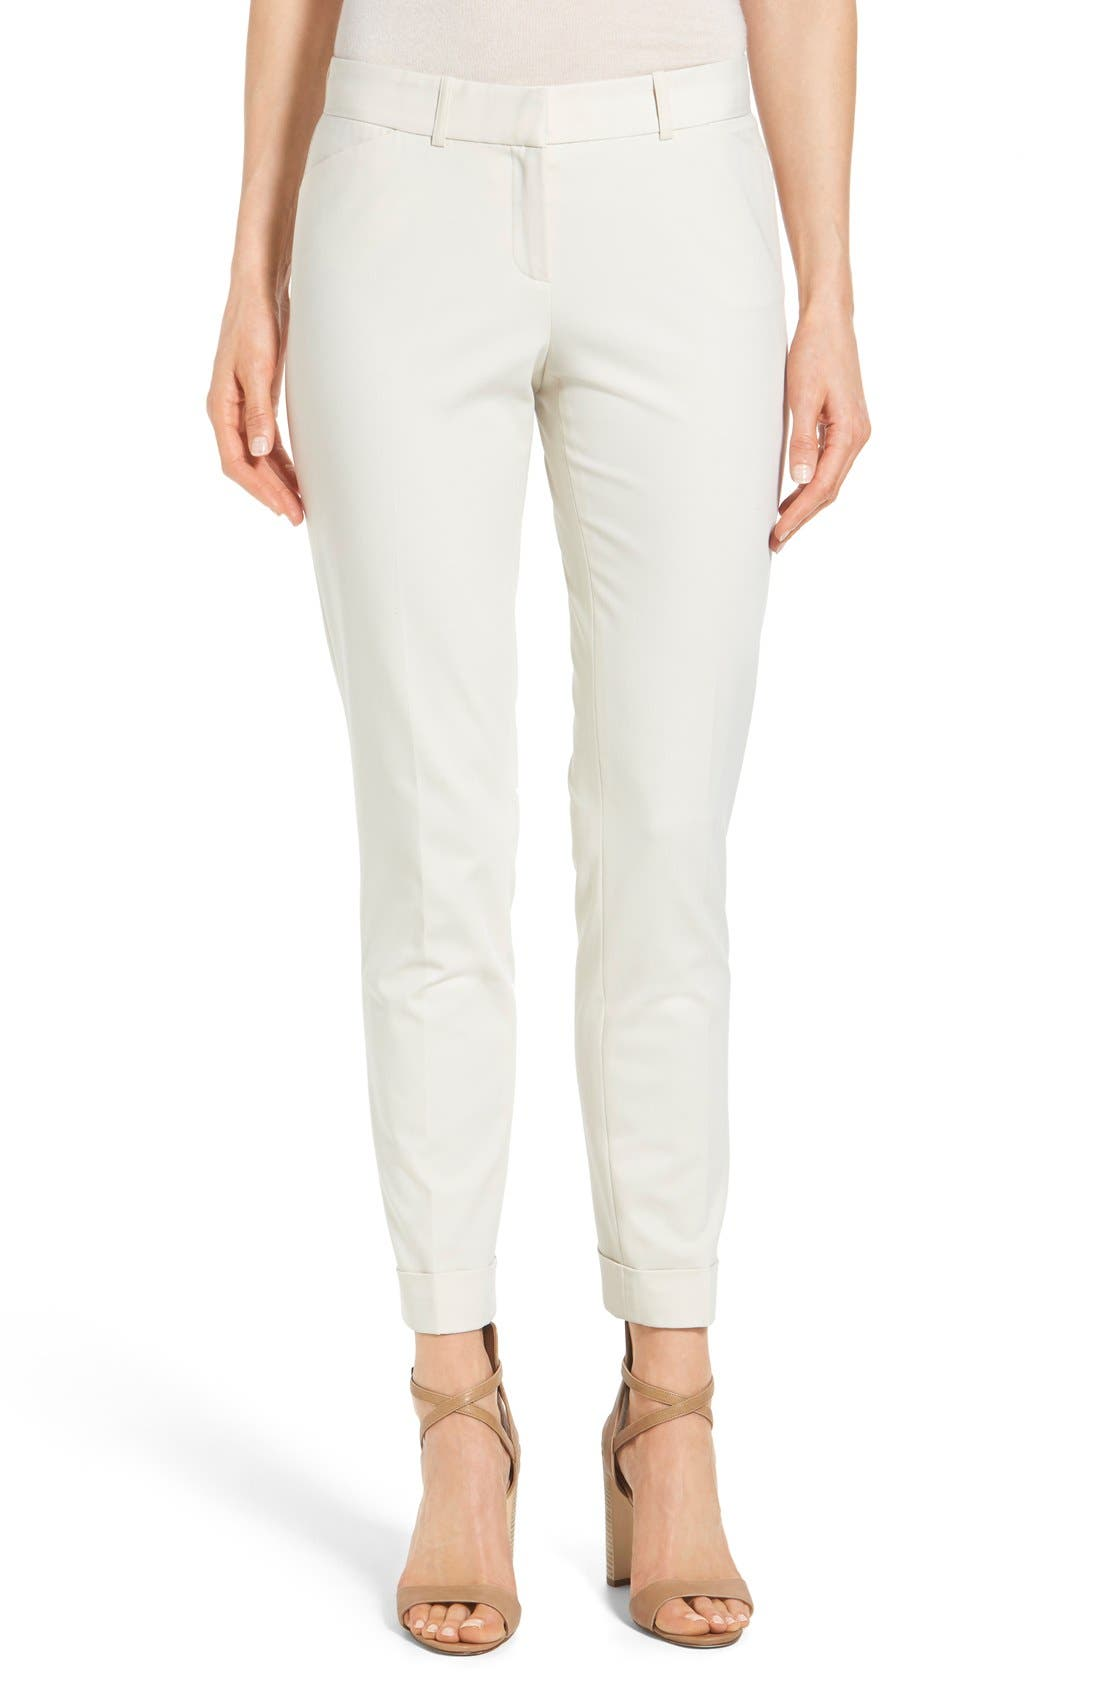 Main Image - Lafayette 148 New York 'Downtown' Stretch Cotton Blend Cuff Ankle Pants (Regular & Petite)